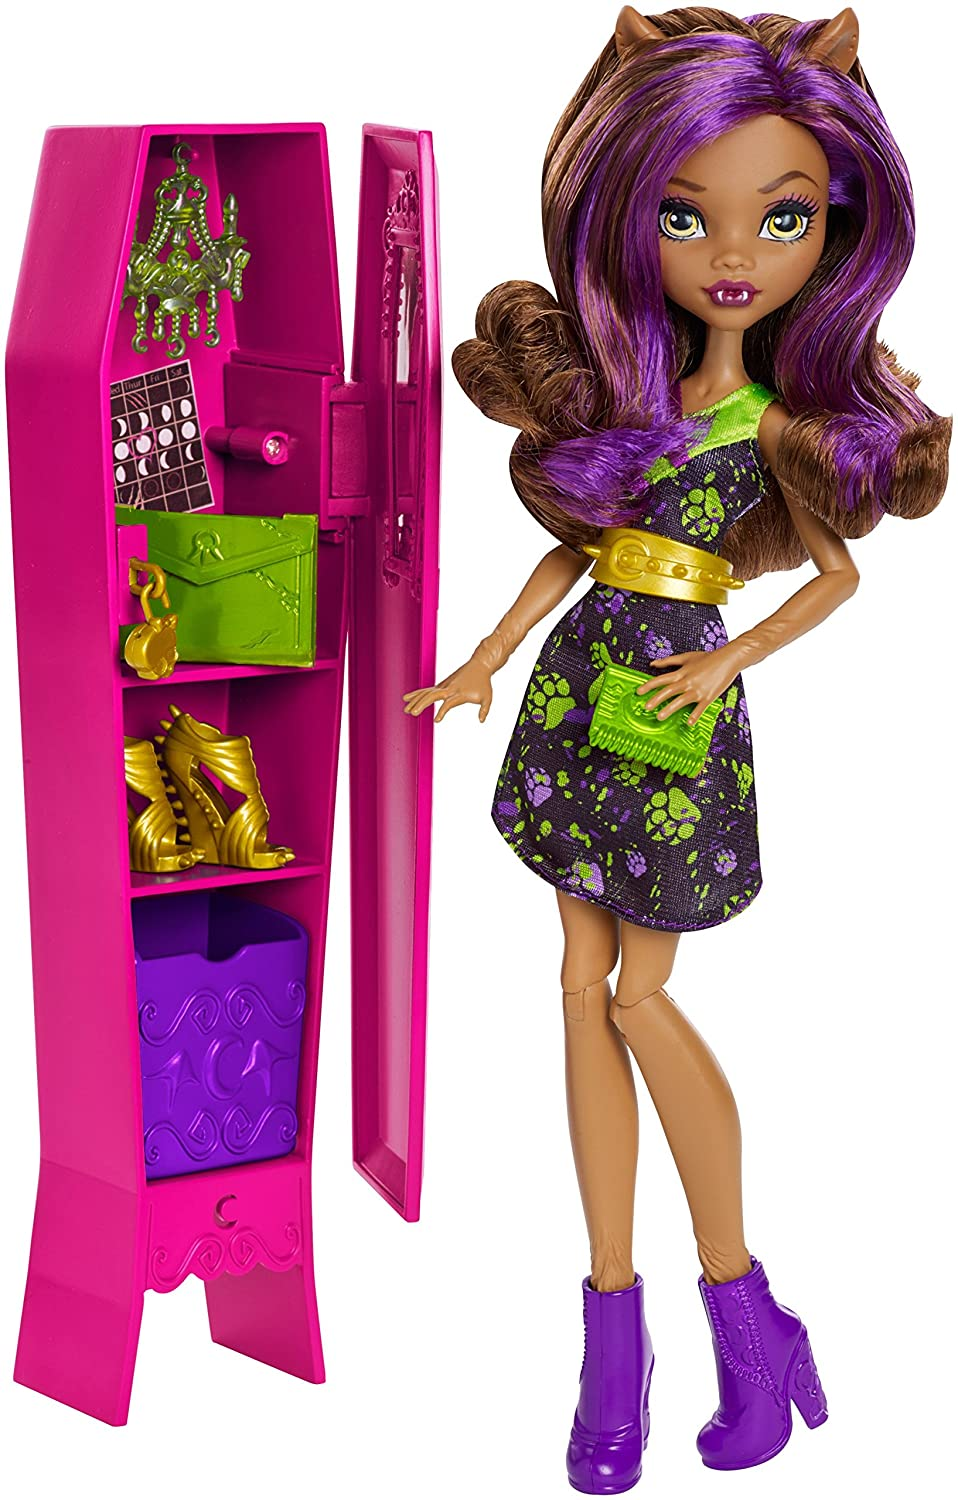 Amazoncom Monster High GhoulLaLa Locker Vehicle with Clawdeen